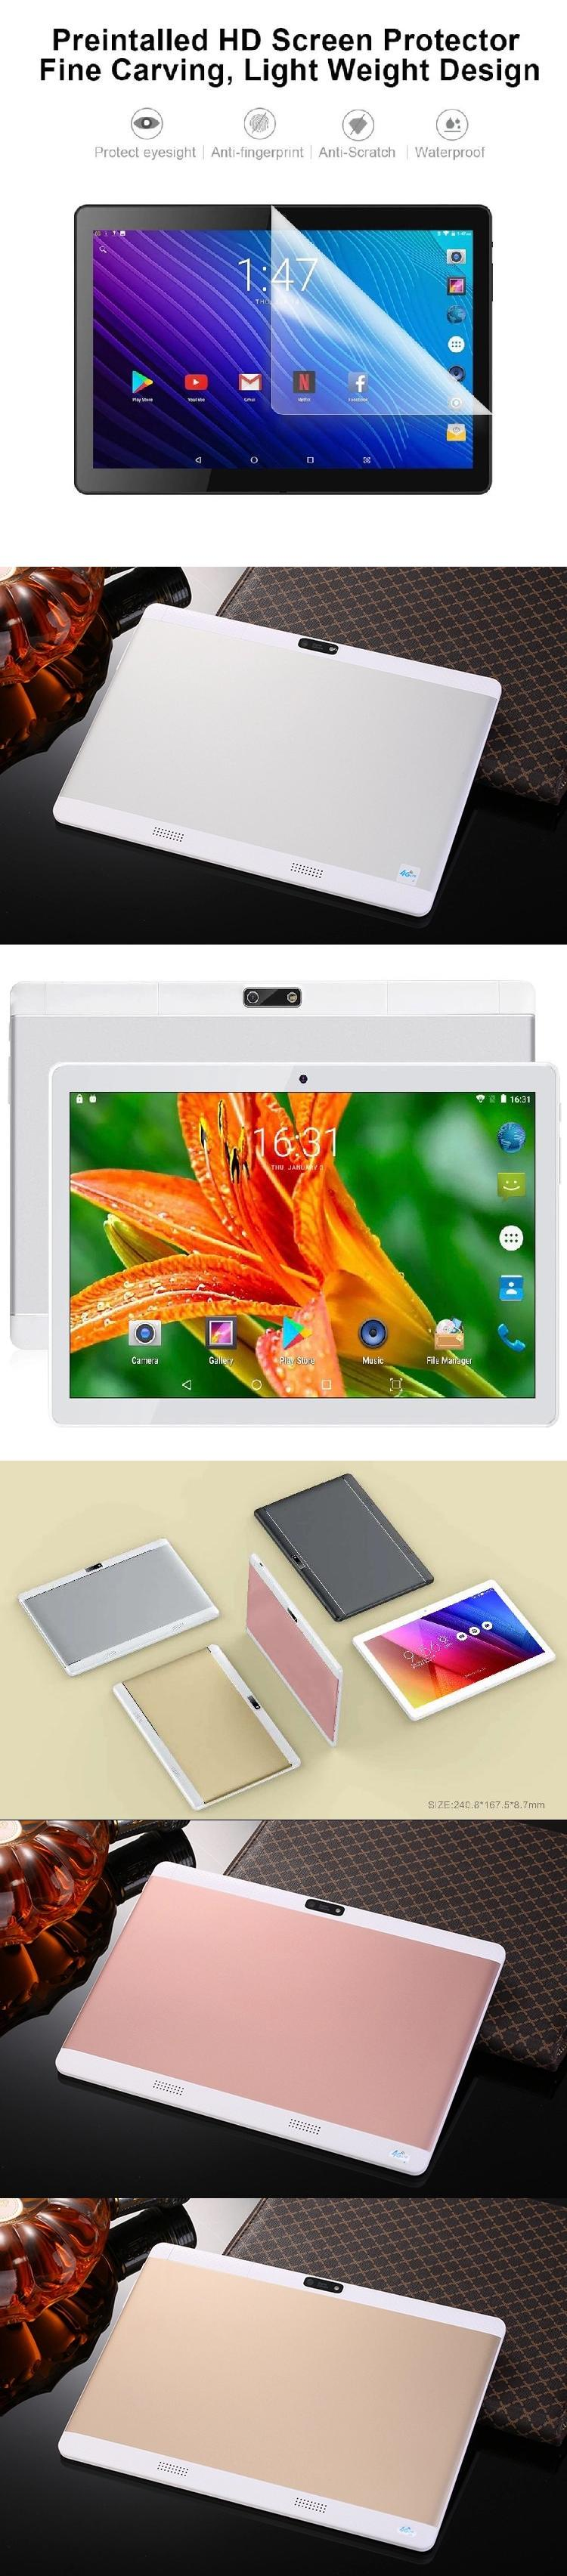 Pretty design wifi tablet 10 inch white label for bulk material